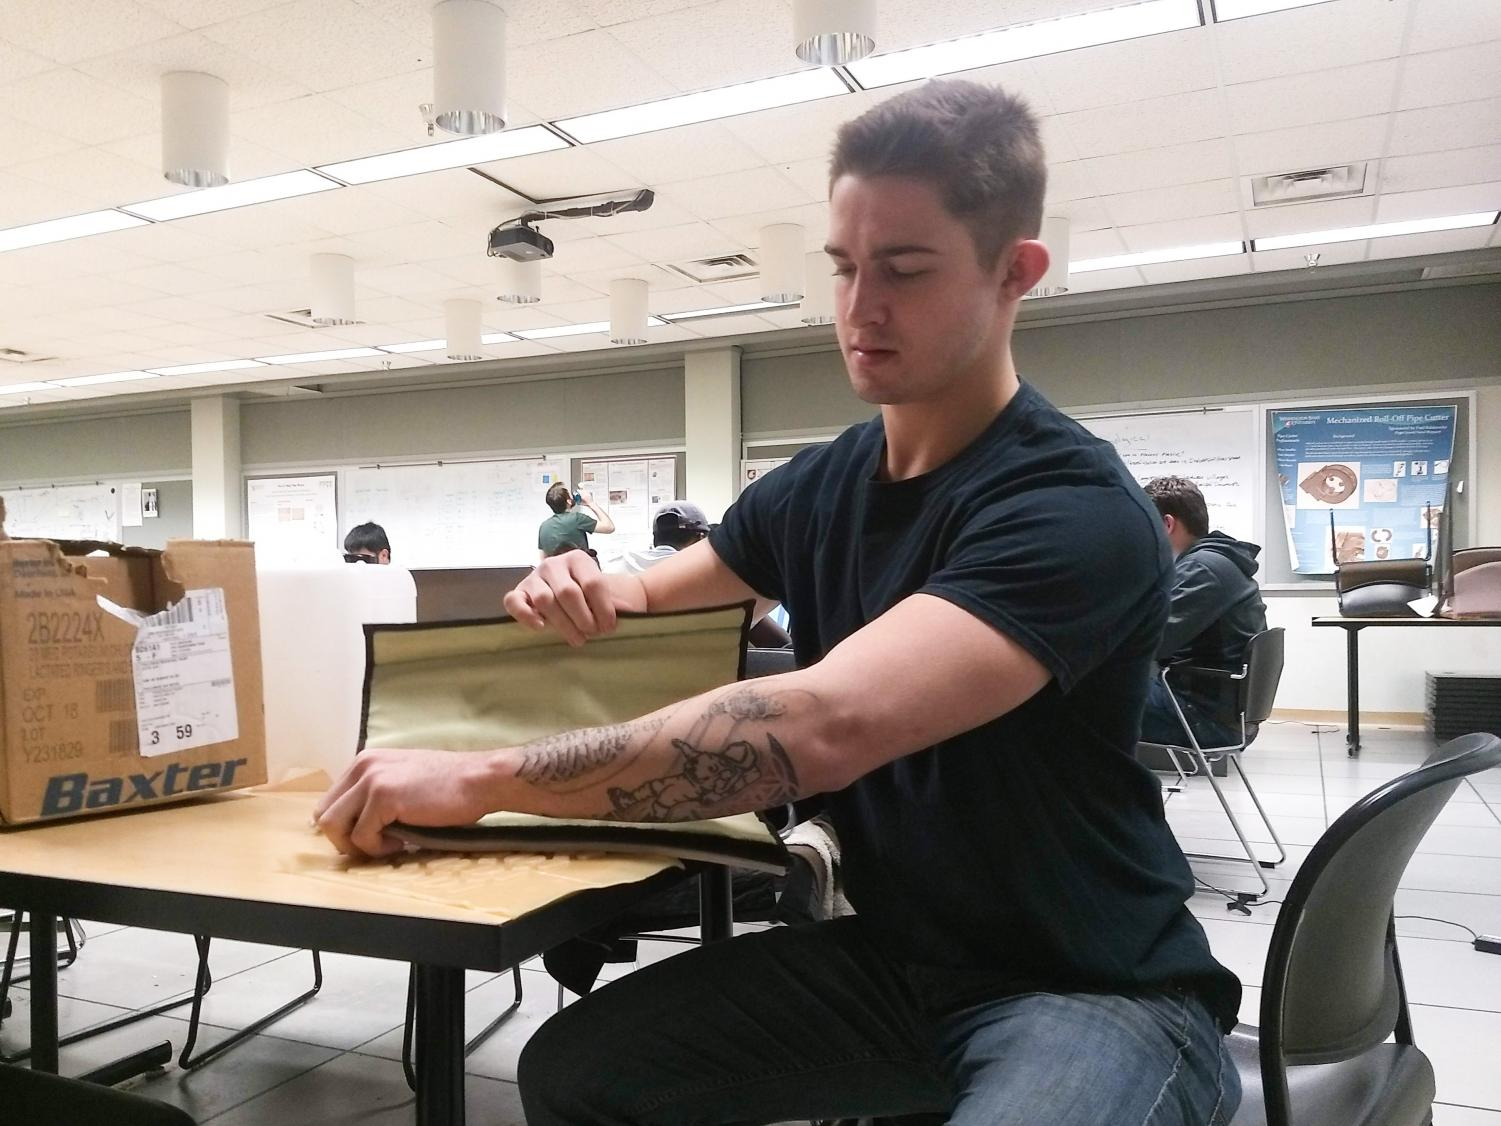 Mechanical engineering senior Zac Cannon adjusts the vein tubes on the simulated IV arm. The purpose of the arm is to help healthcare providers practice the technical aspects of finding the vein, while simultaneously practicing social skills.